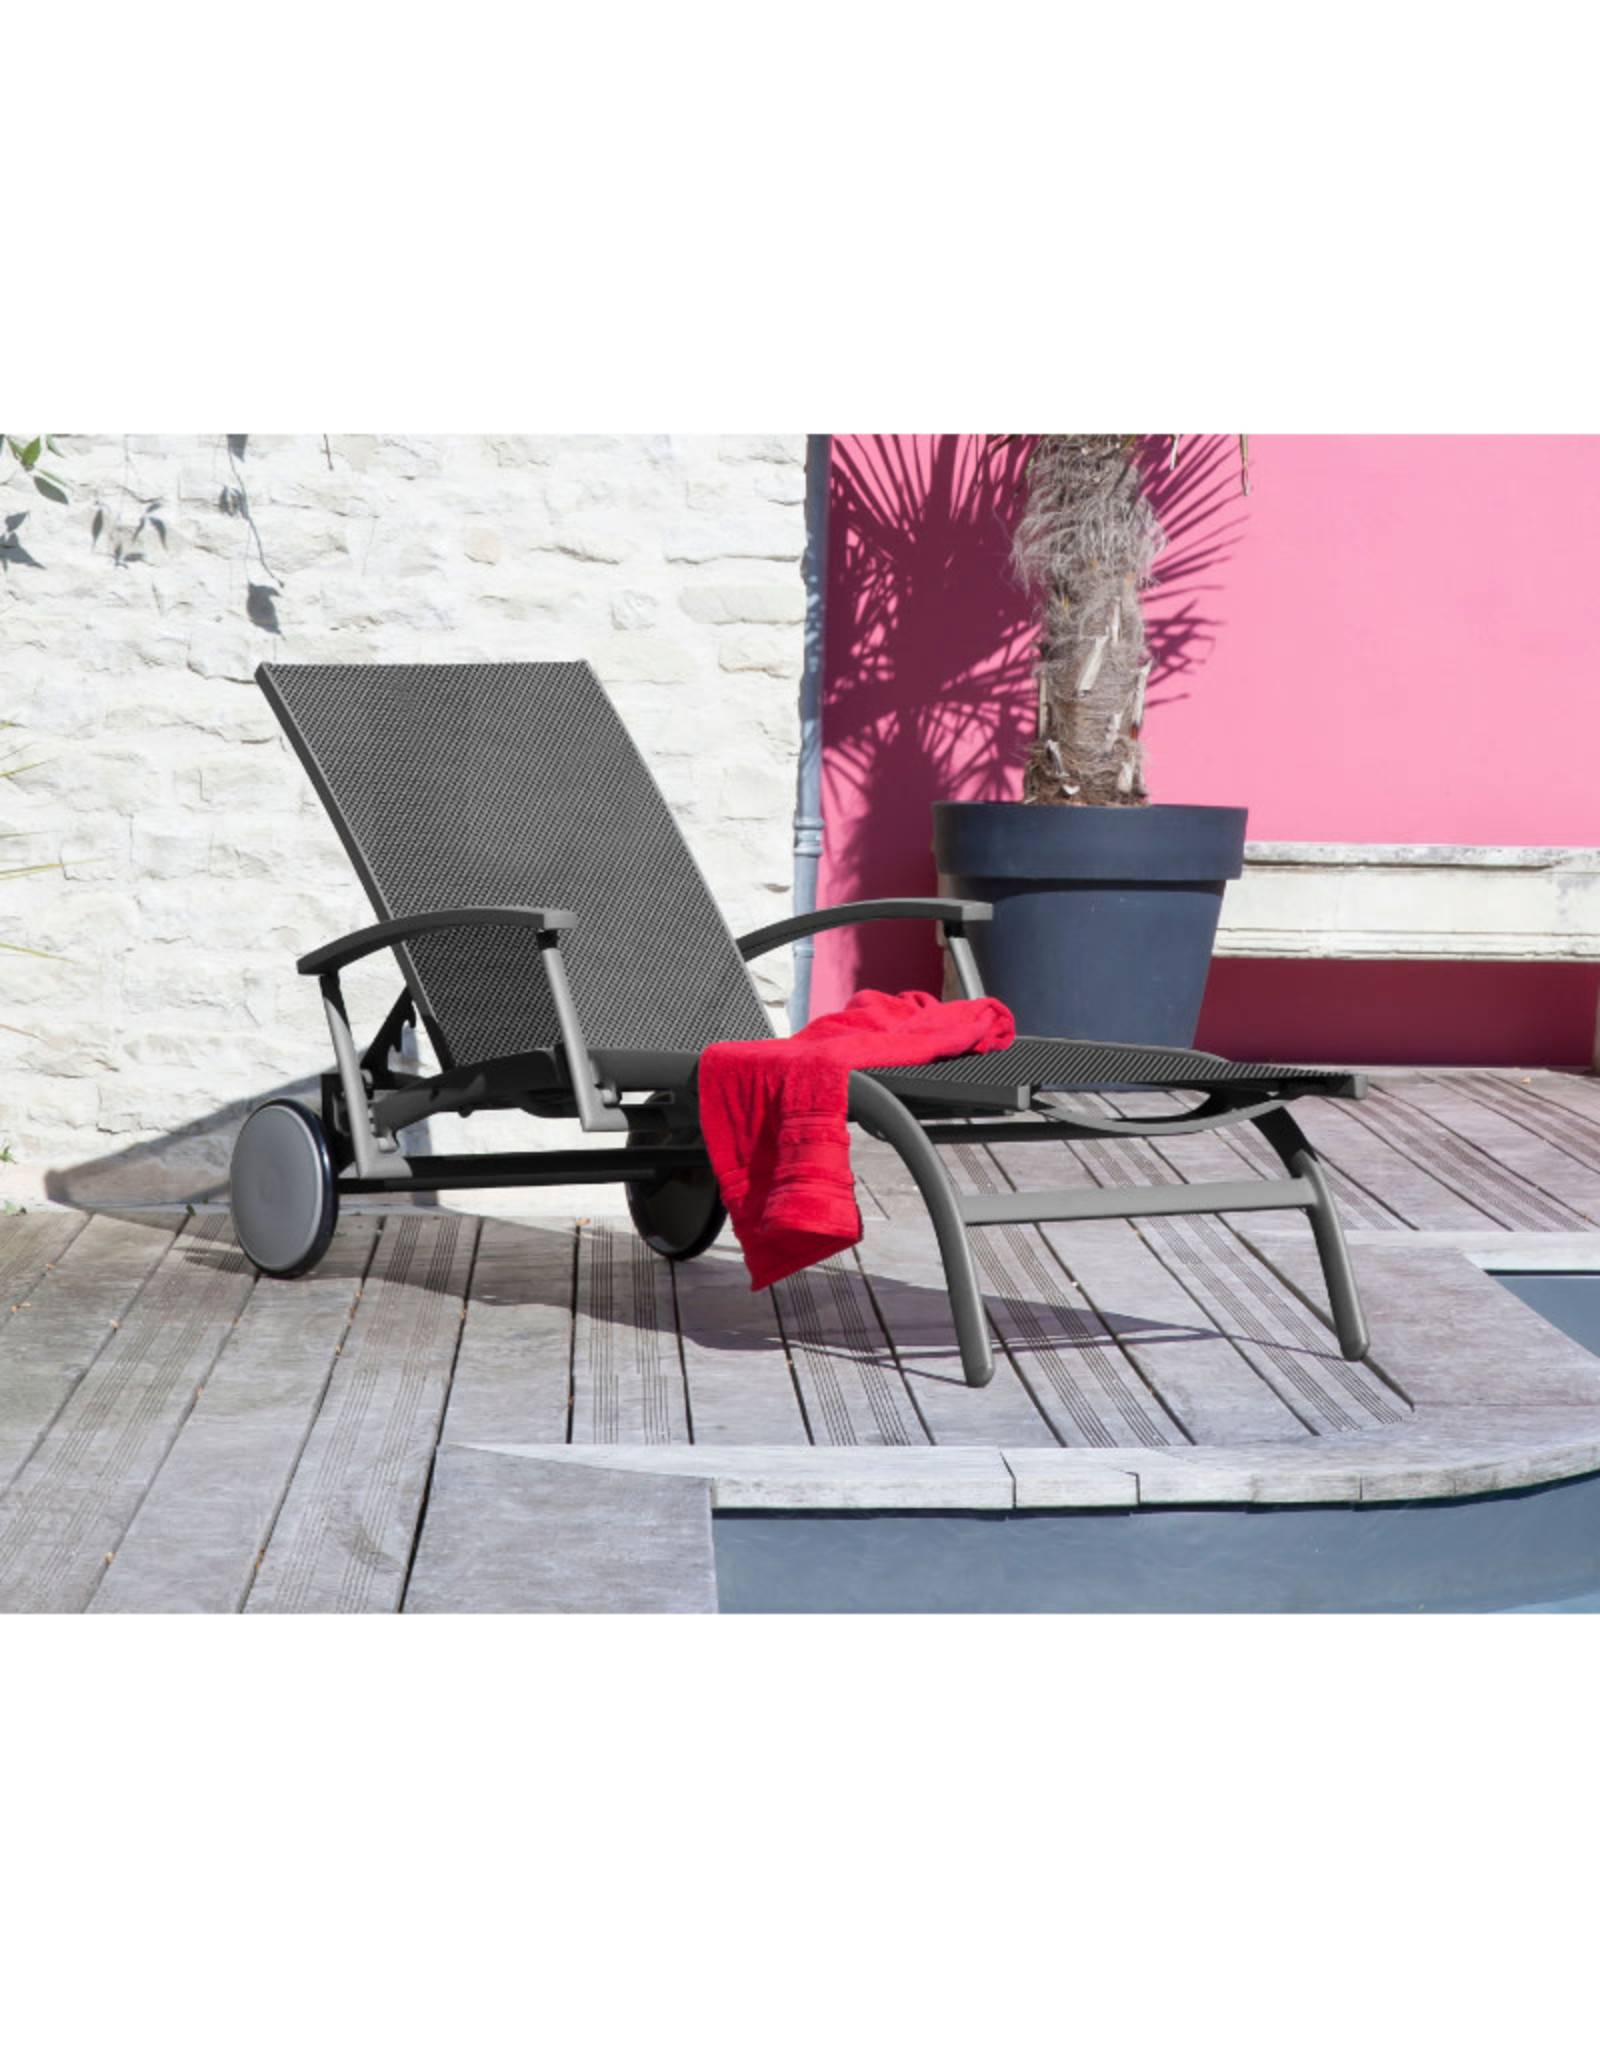 OCEO Oceo Elegance lounger antraciet